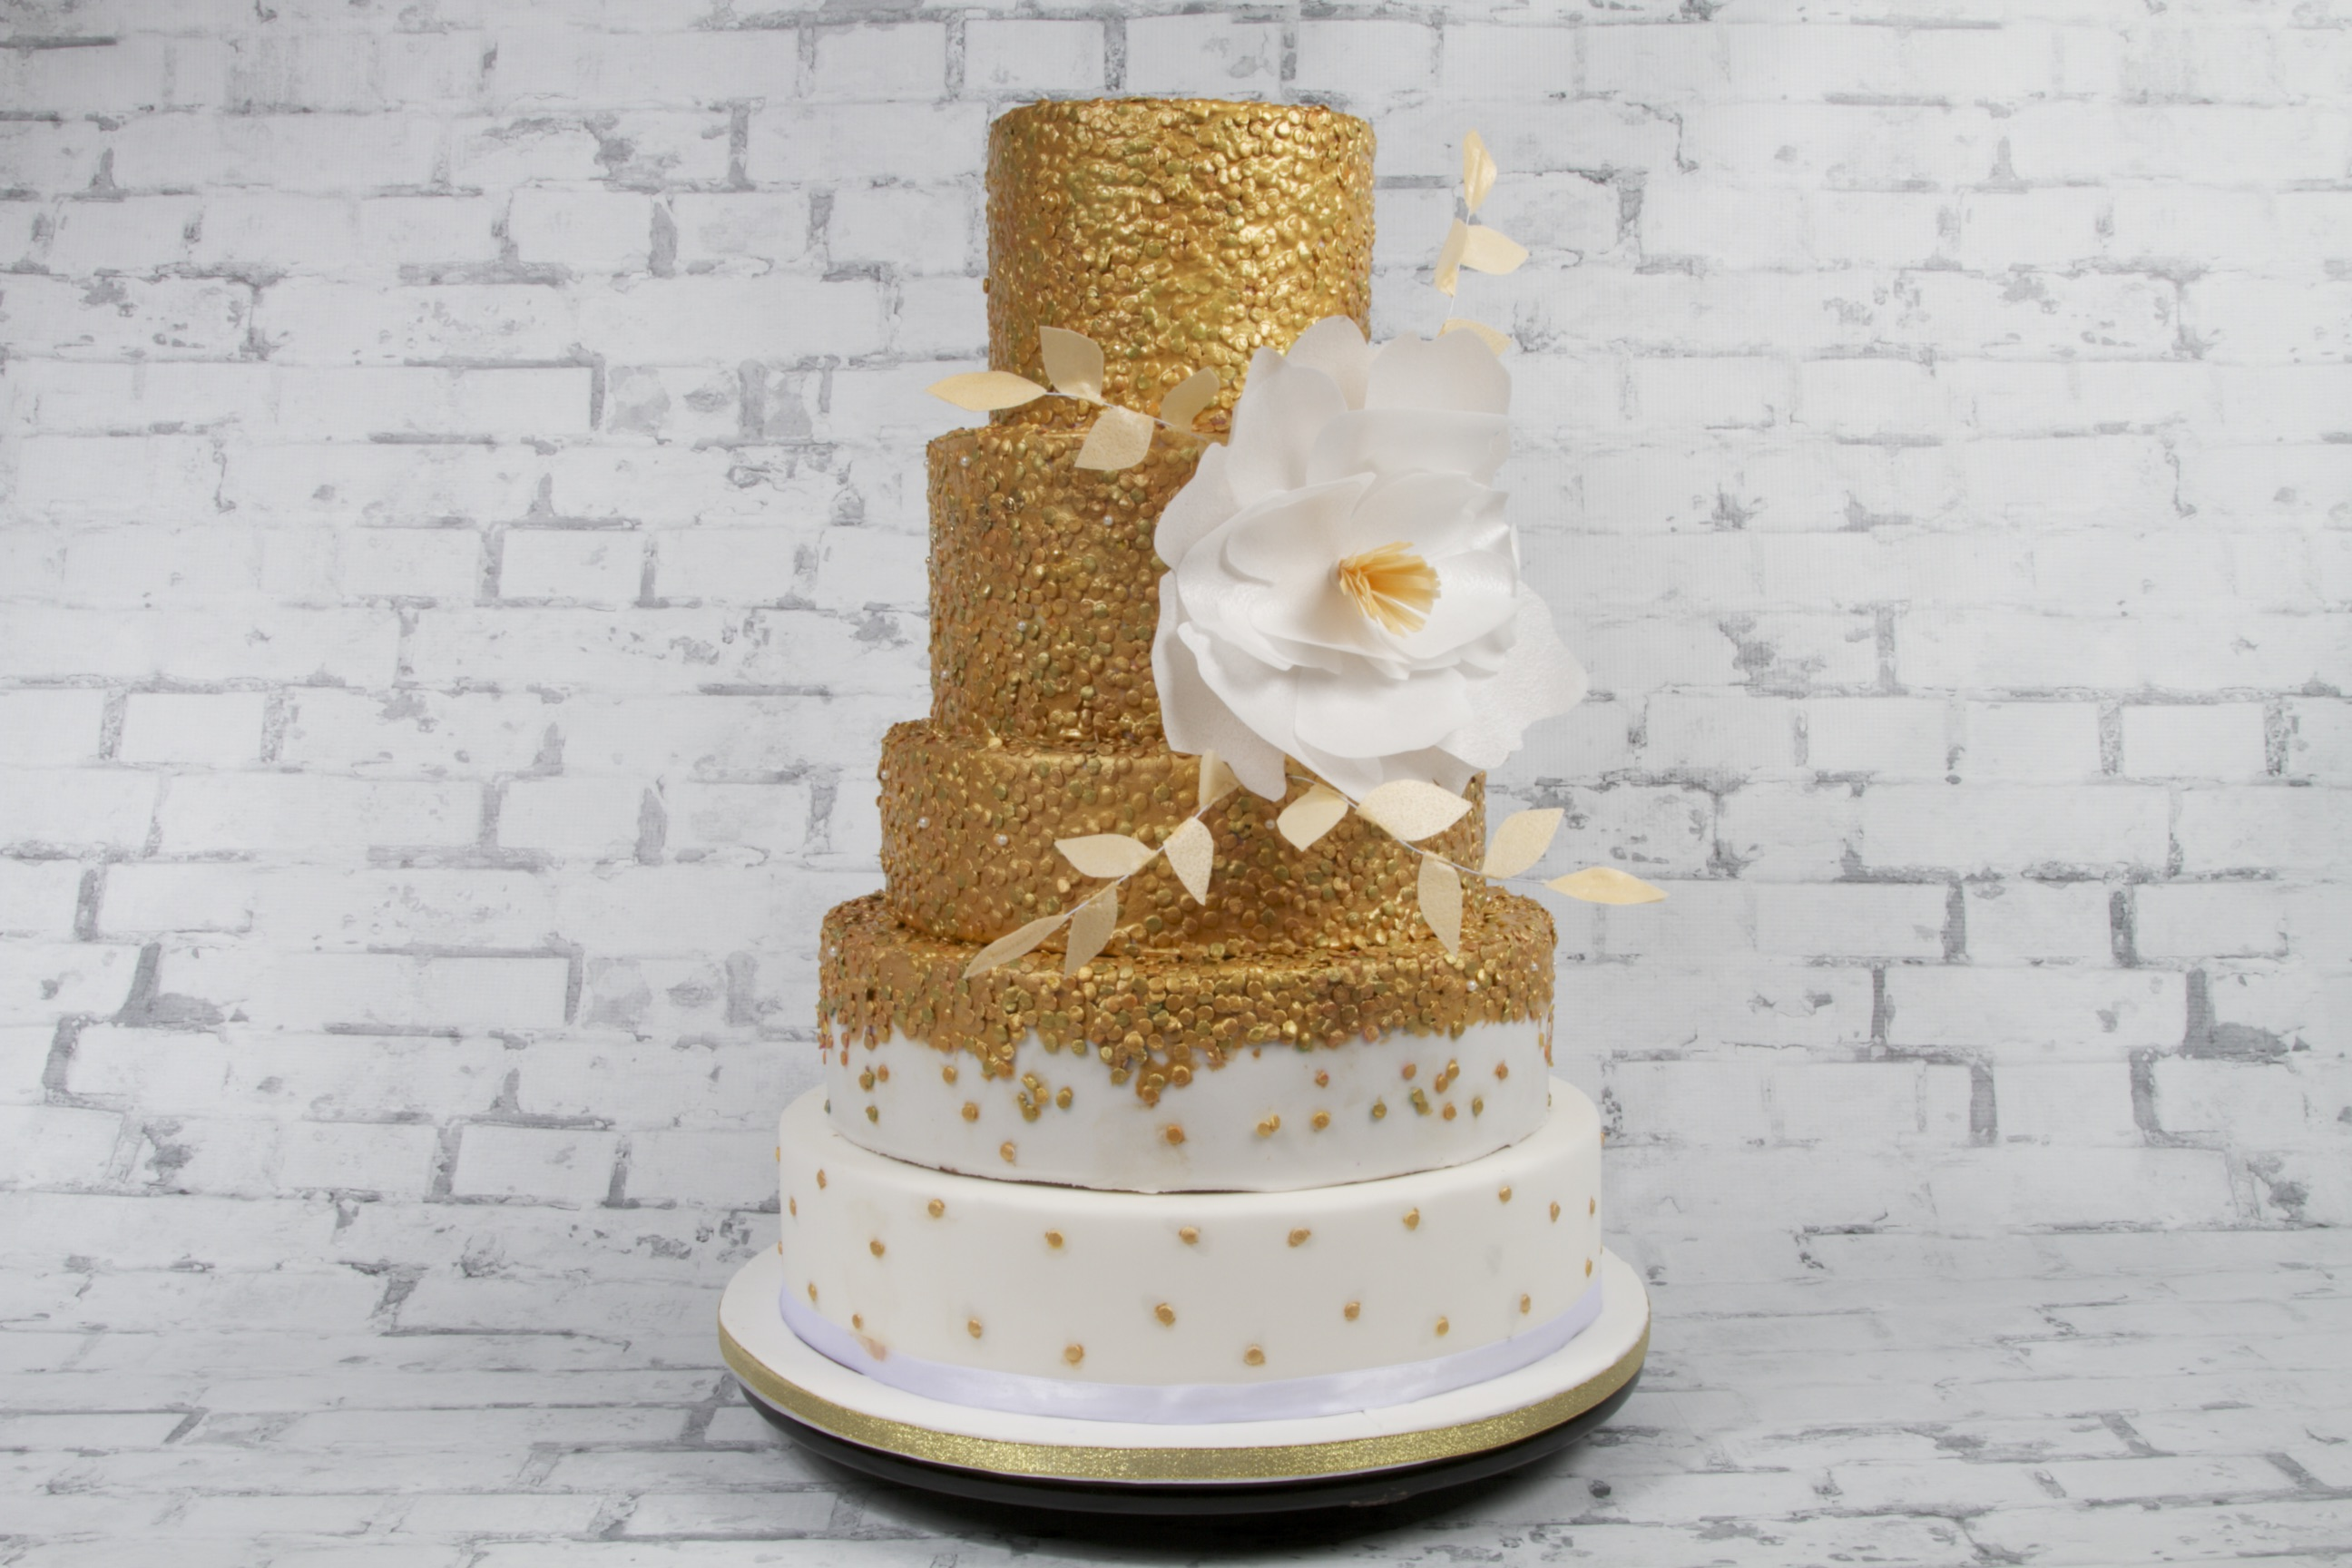 Wedding Cake Dubai Maker Baking Cakes In Uae Bride Designs